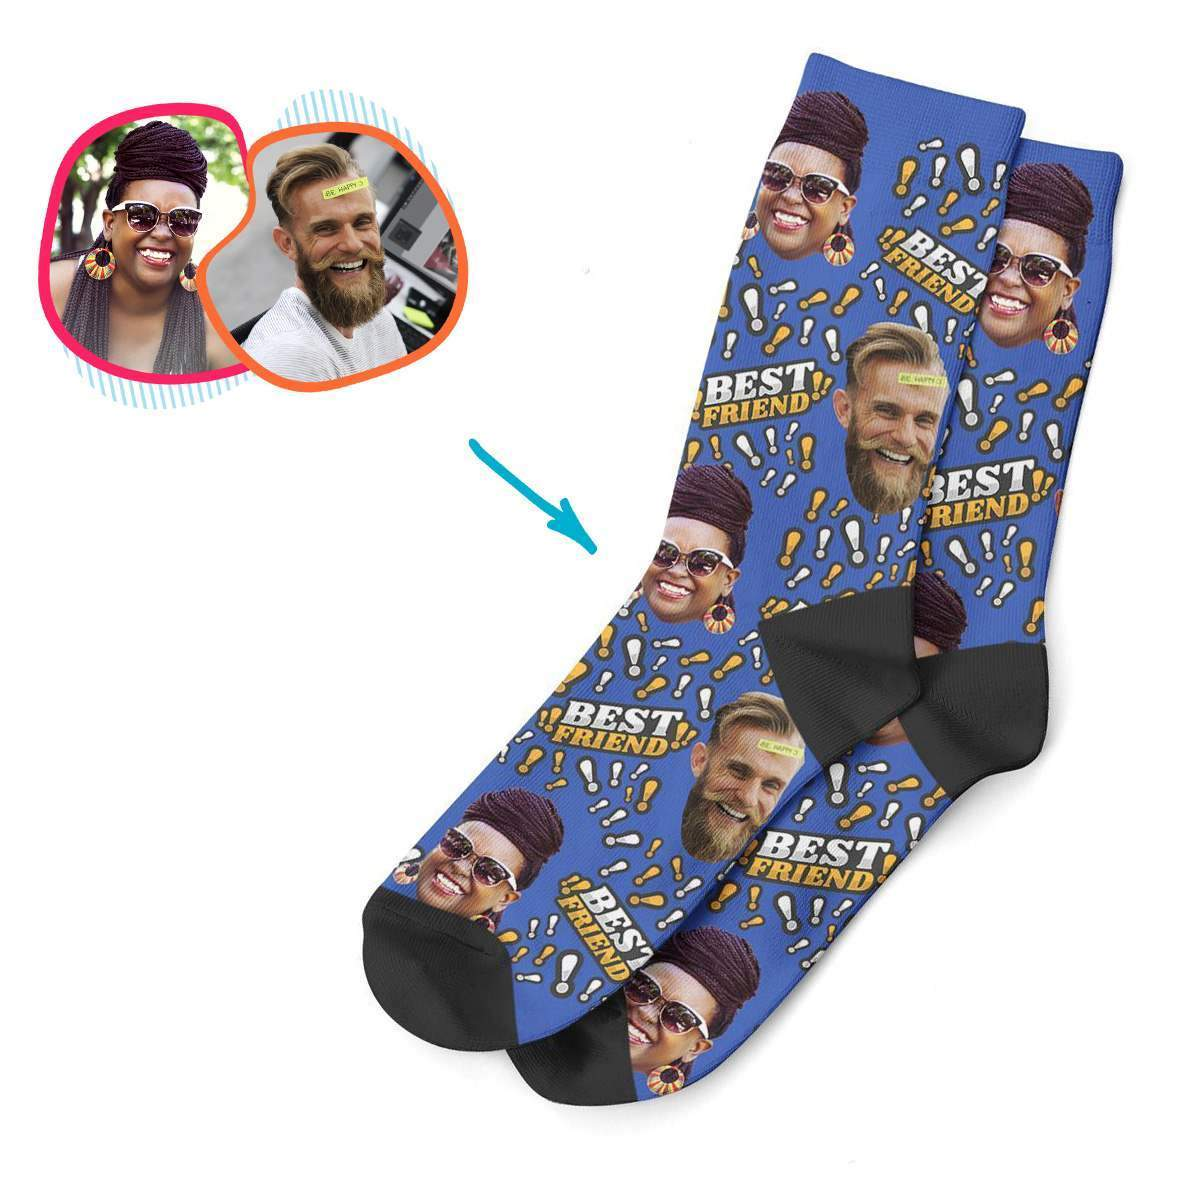 darkblue Best Friend socks personalized with photo of face printed on them